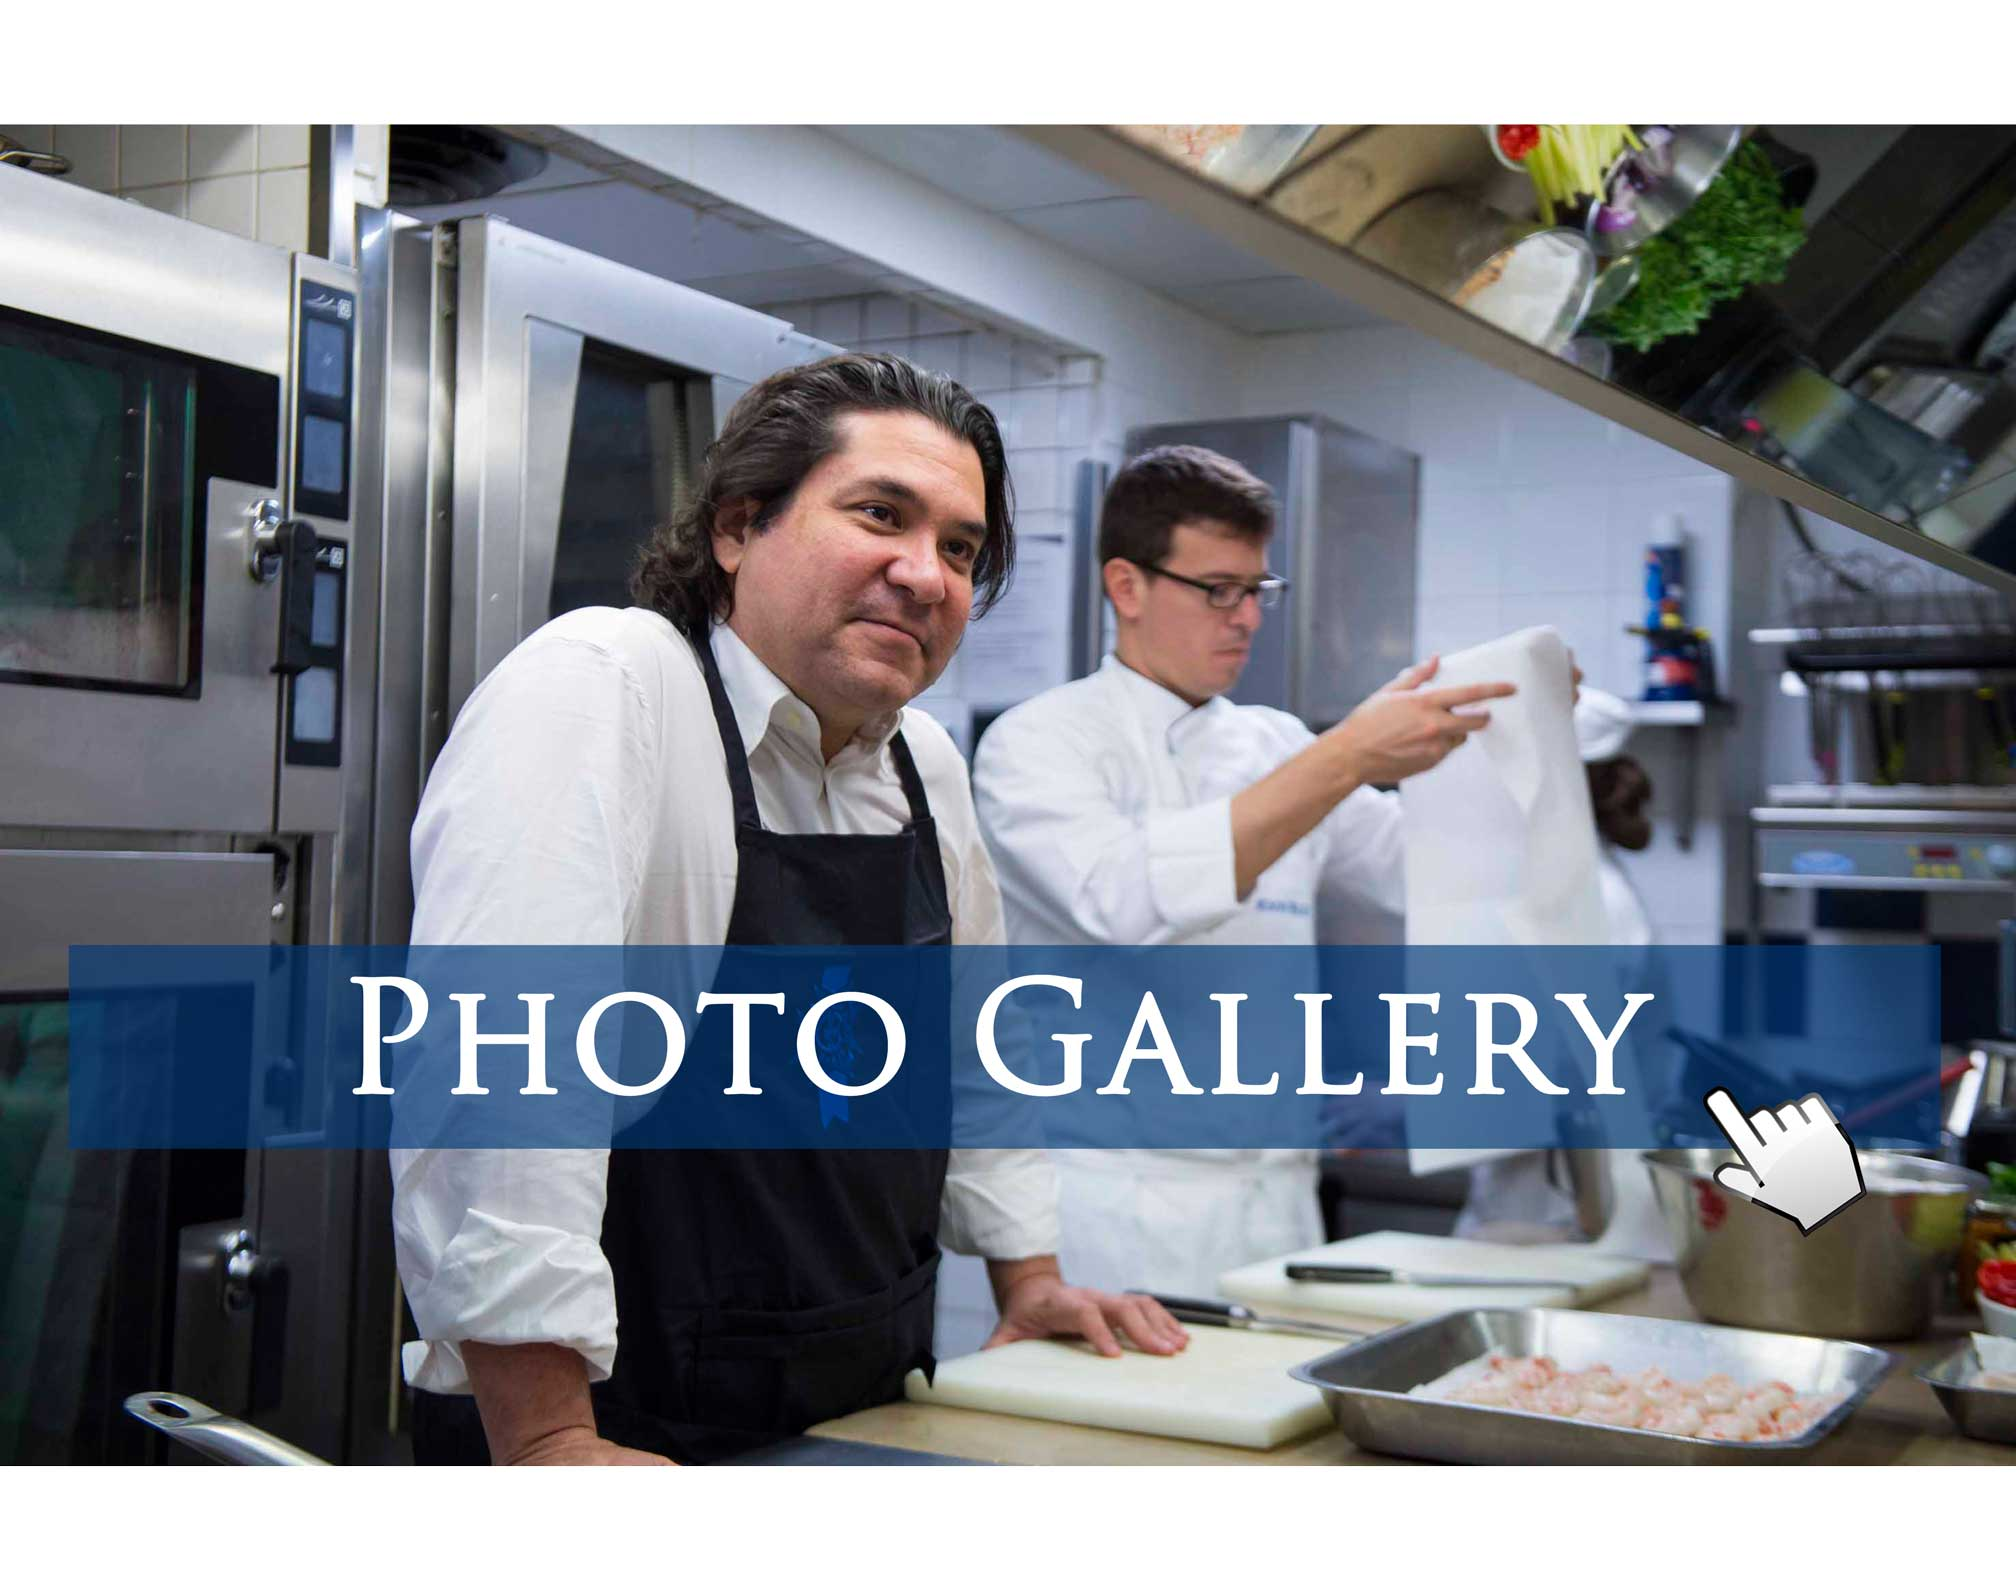 Gaston Acurio at Le Cordon Bleu Paris